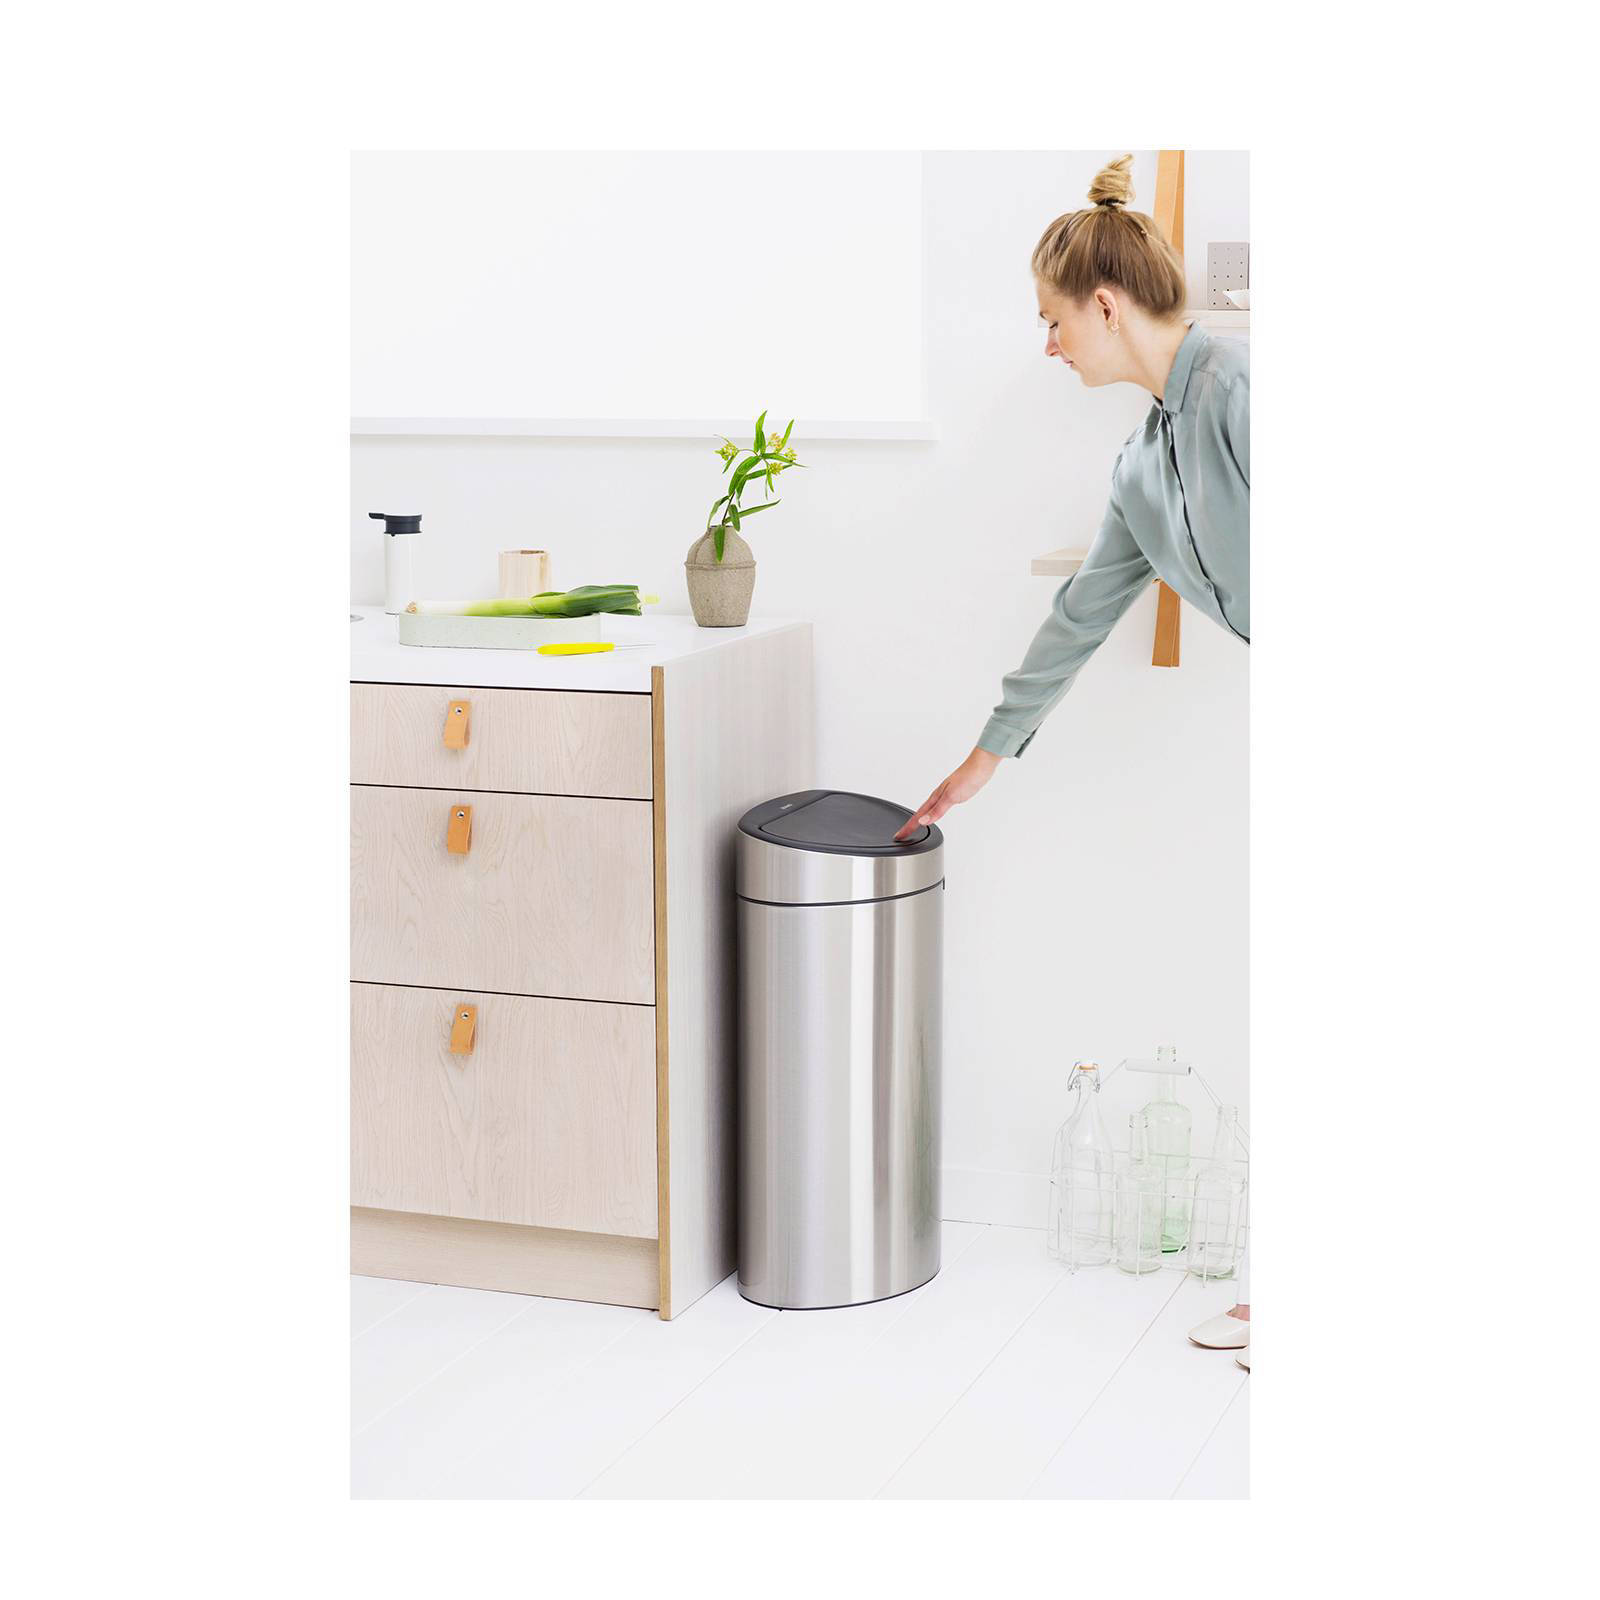 Brabantia Touch Bin Rvs.Recycling Kitchen Bins Brabantia Kitchen Appliances Tips And Review